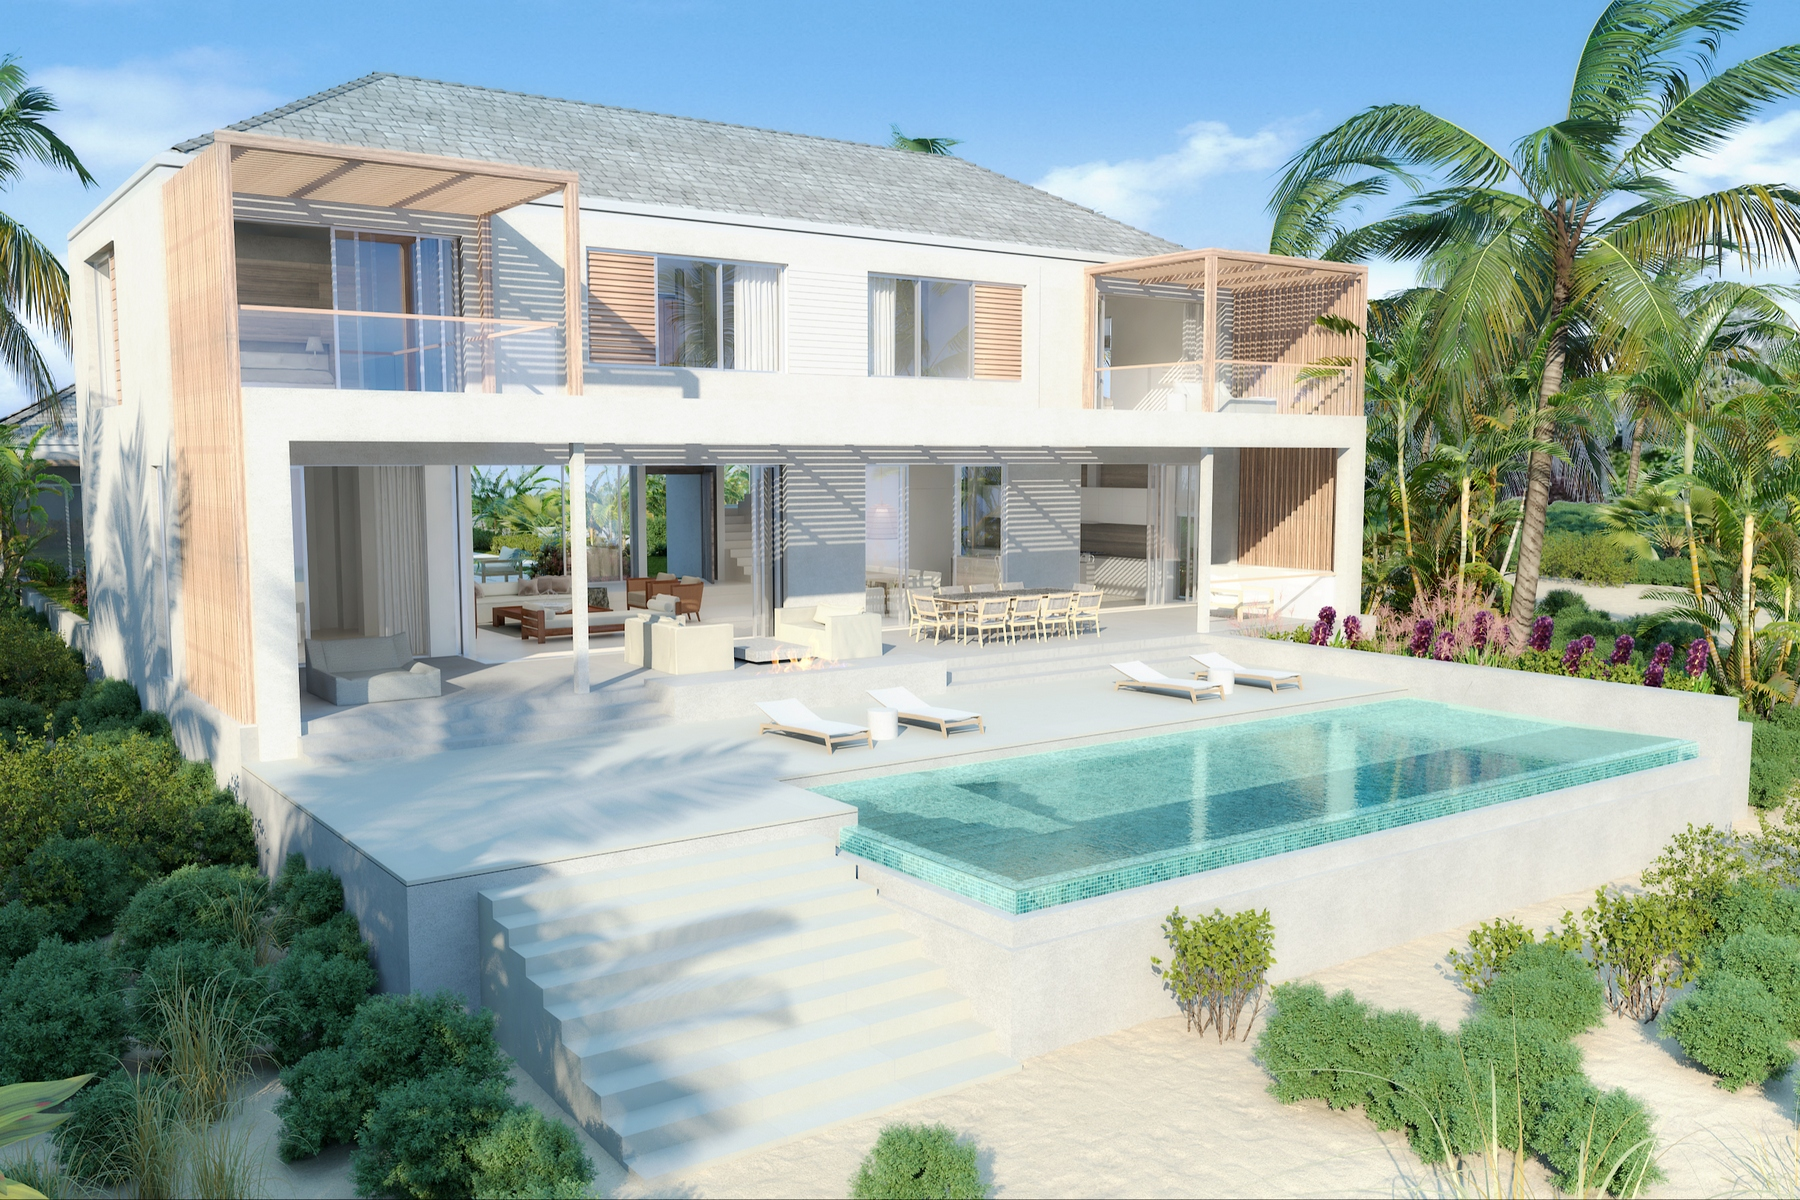 Casa Unifamiliar por un Venta en BEACH ENCLAVE LONG BAY - Design Two Beachfront Long Bay, Providenciales TCI Islas Turcas Y Caicos